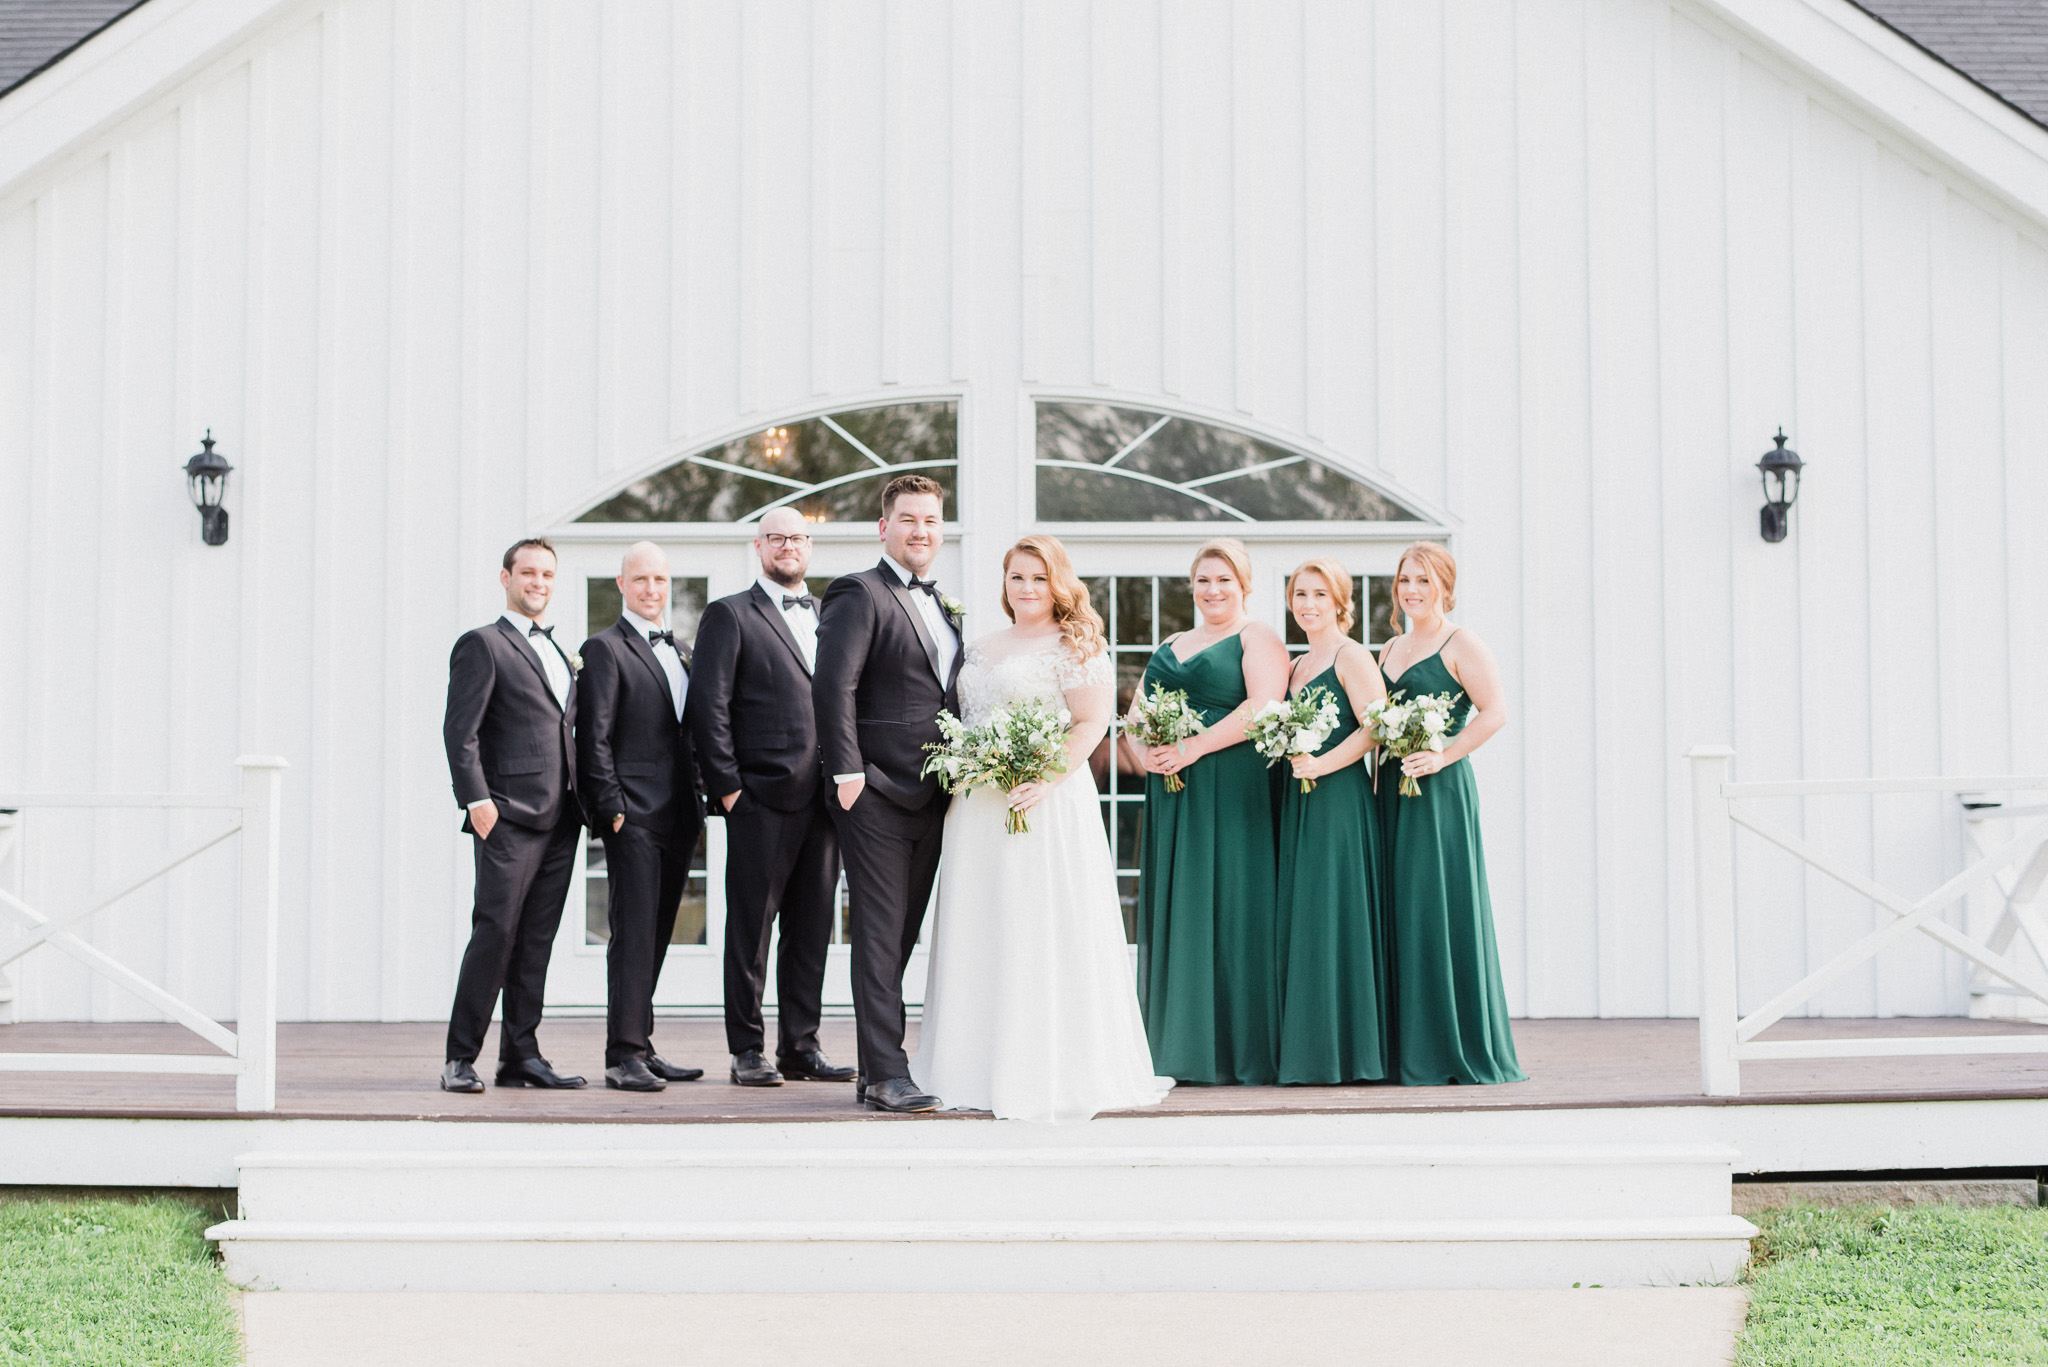 Forest green bridesmaids dresses by Jenn Kavanagh Photography